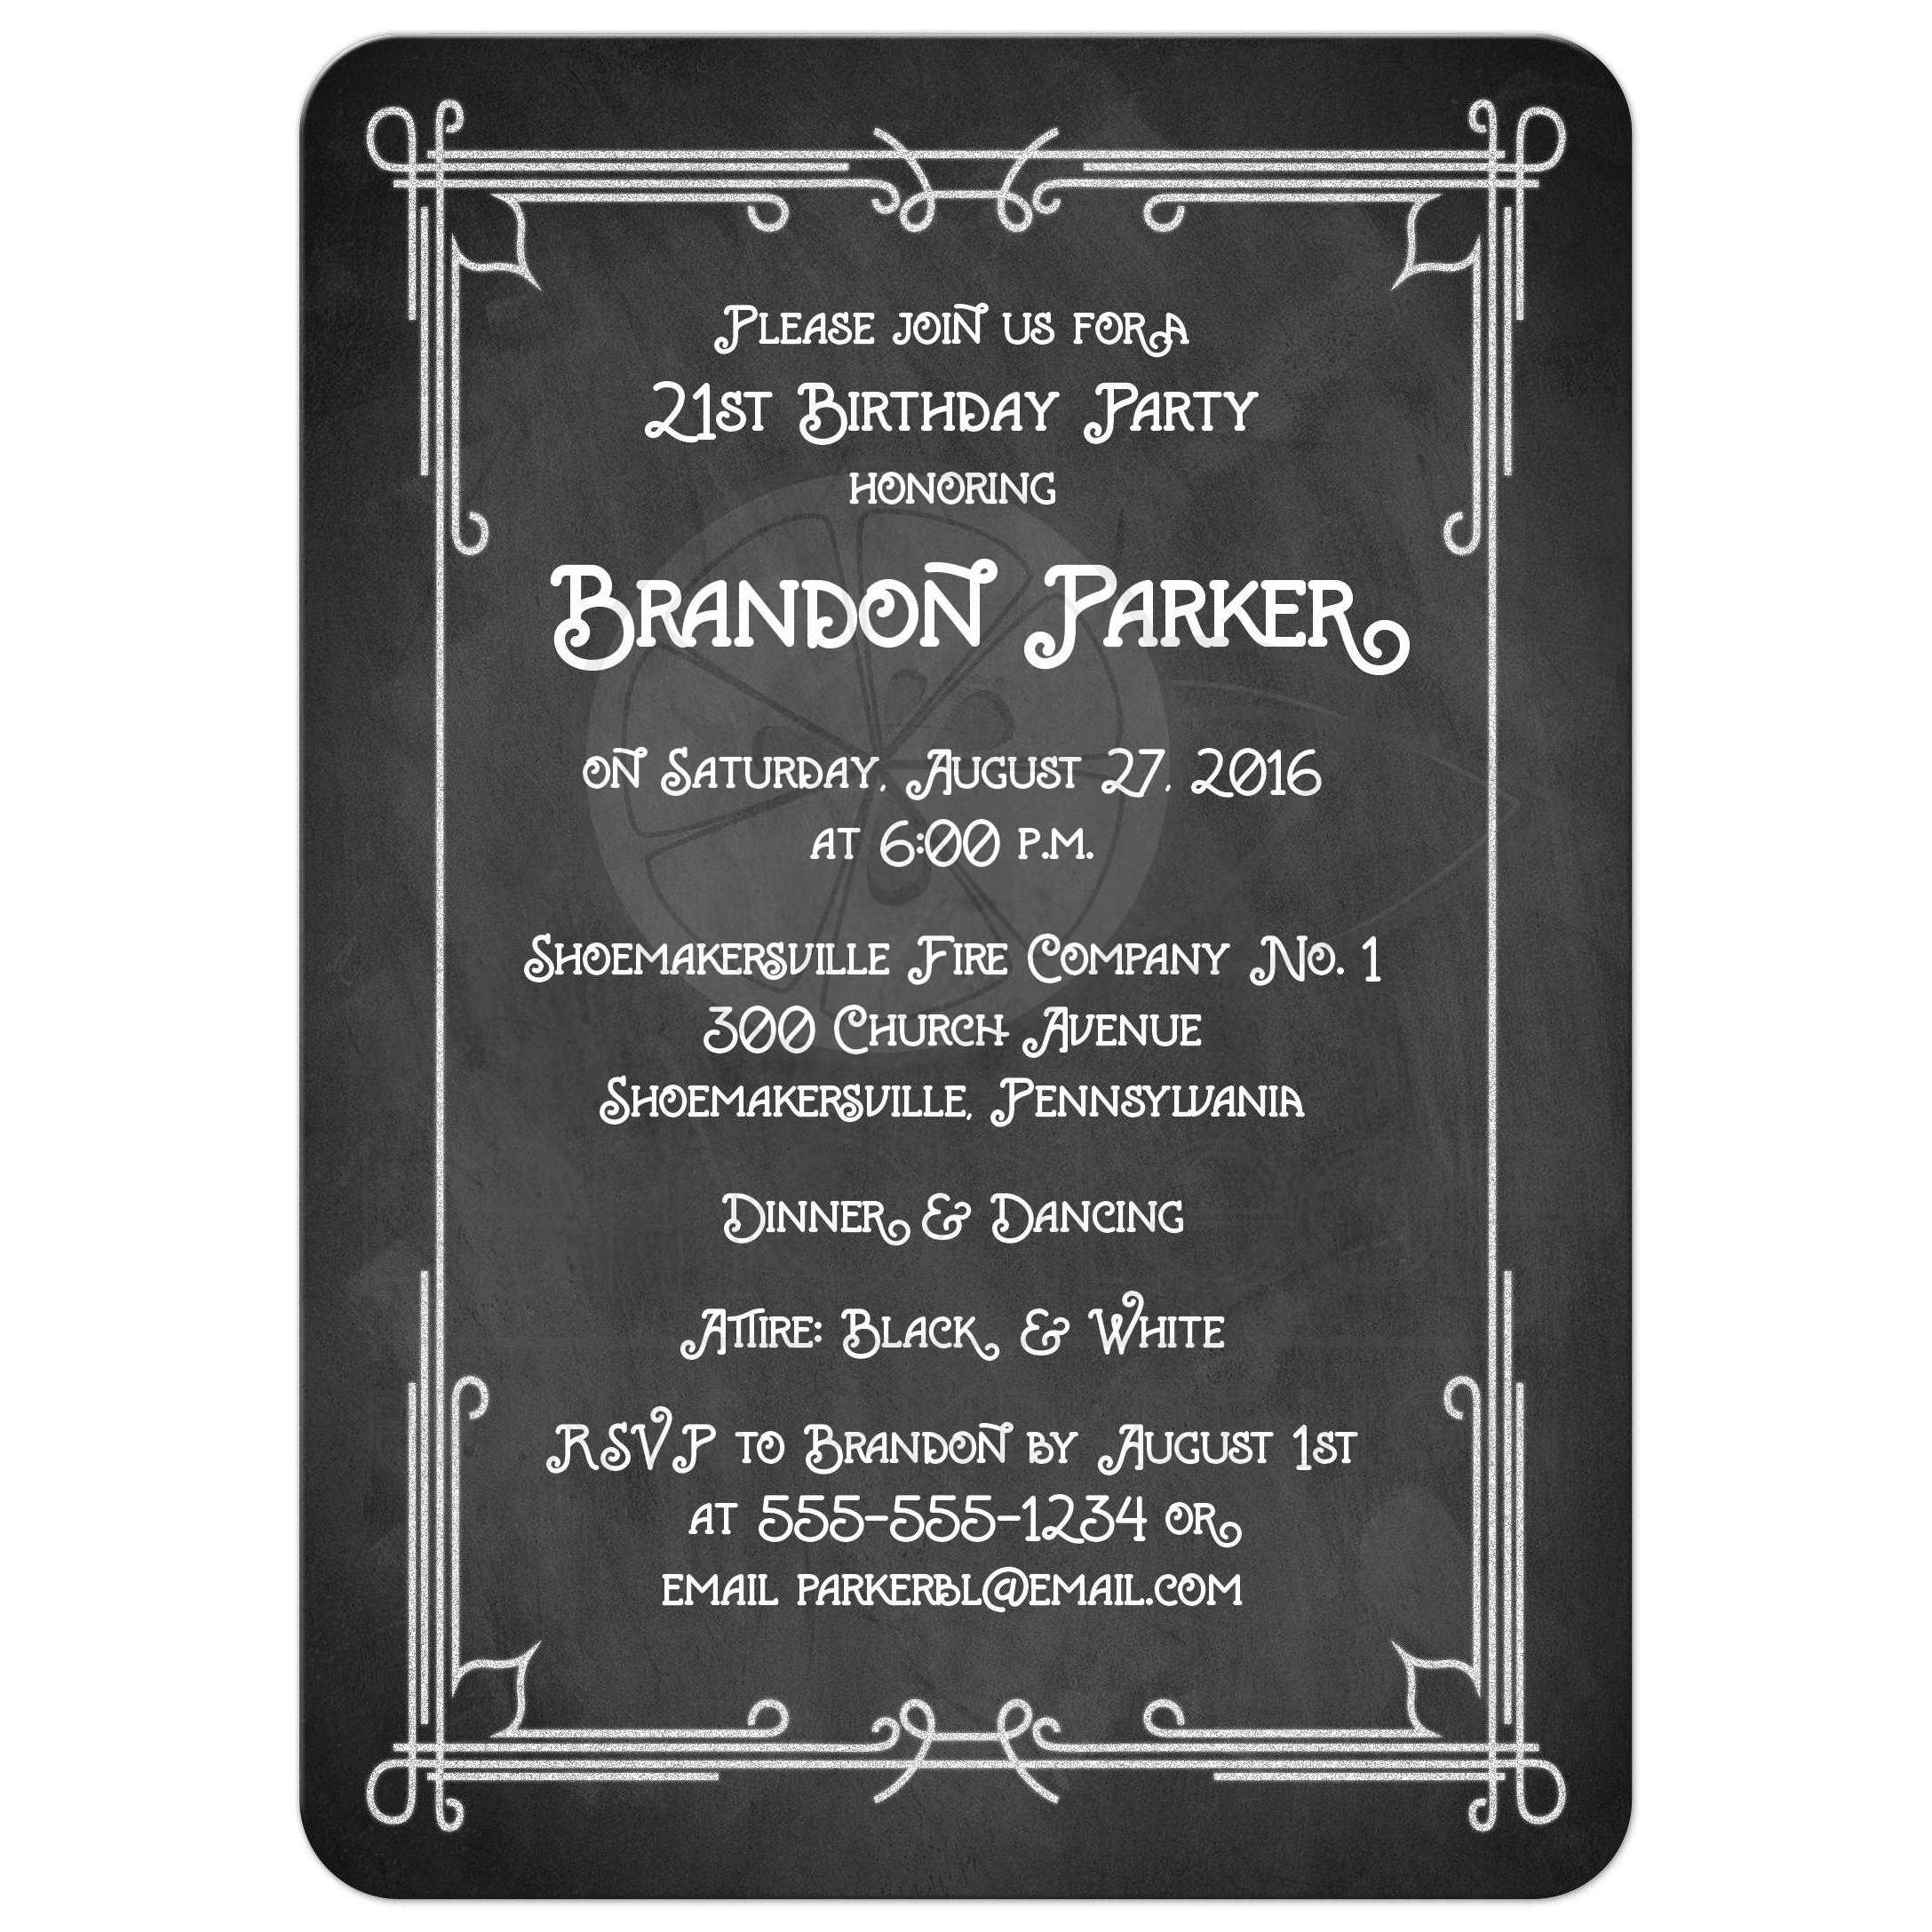 21st birthday party photo invitation black and white chalkboard great black and white chalkboard art deco scrolls 21st birthday party invitation with photo template filmwisefo